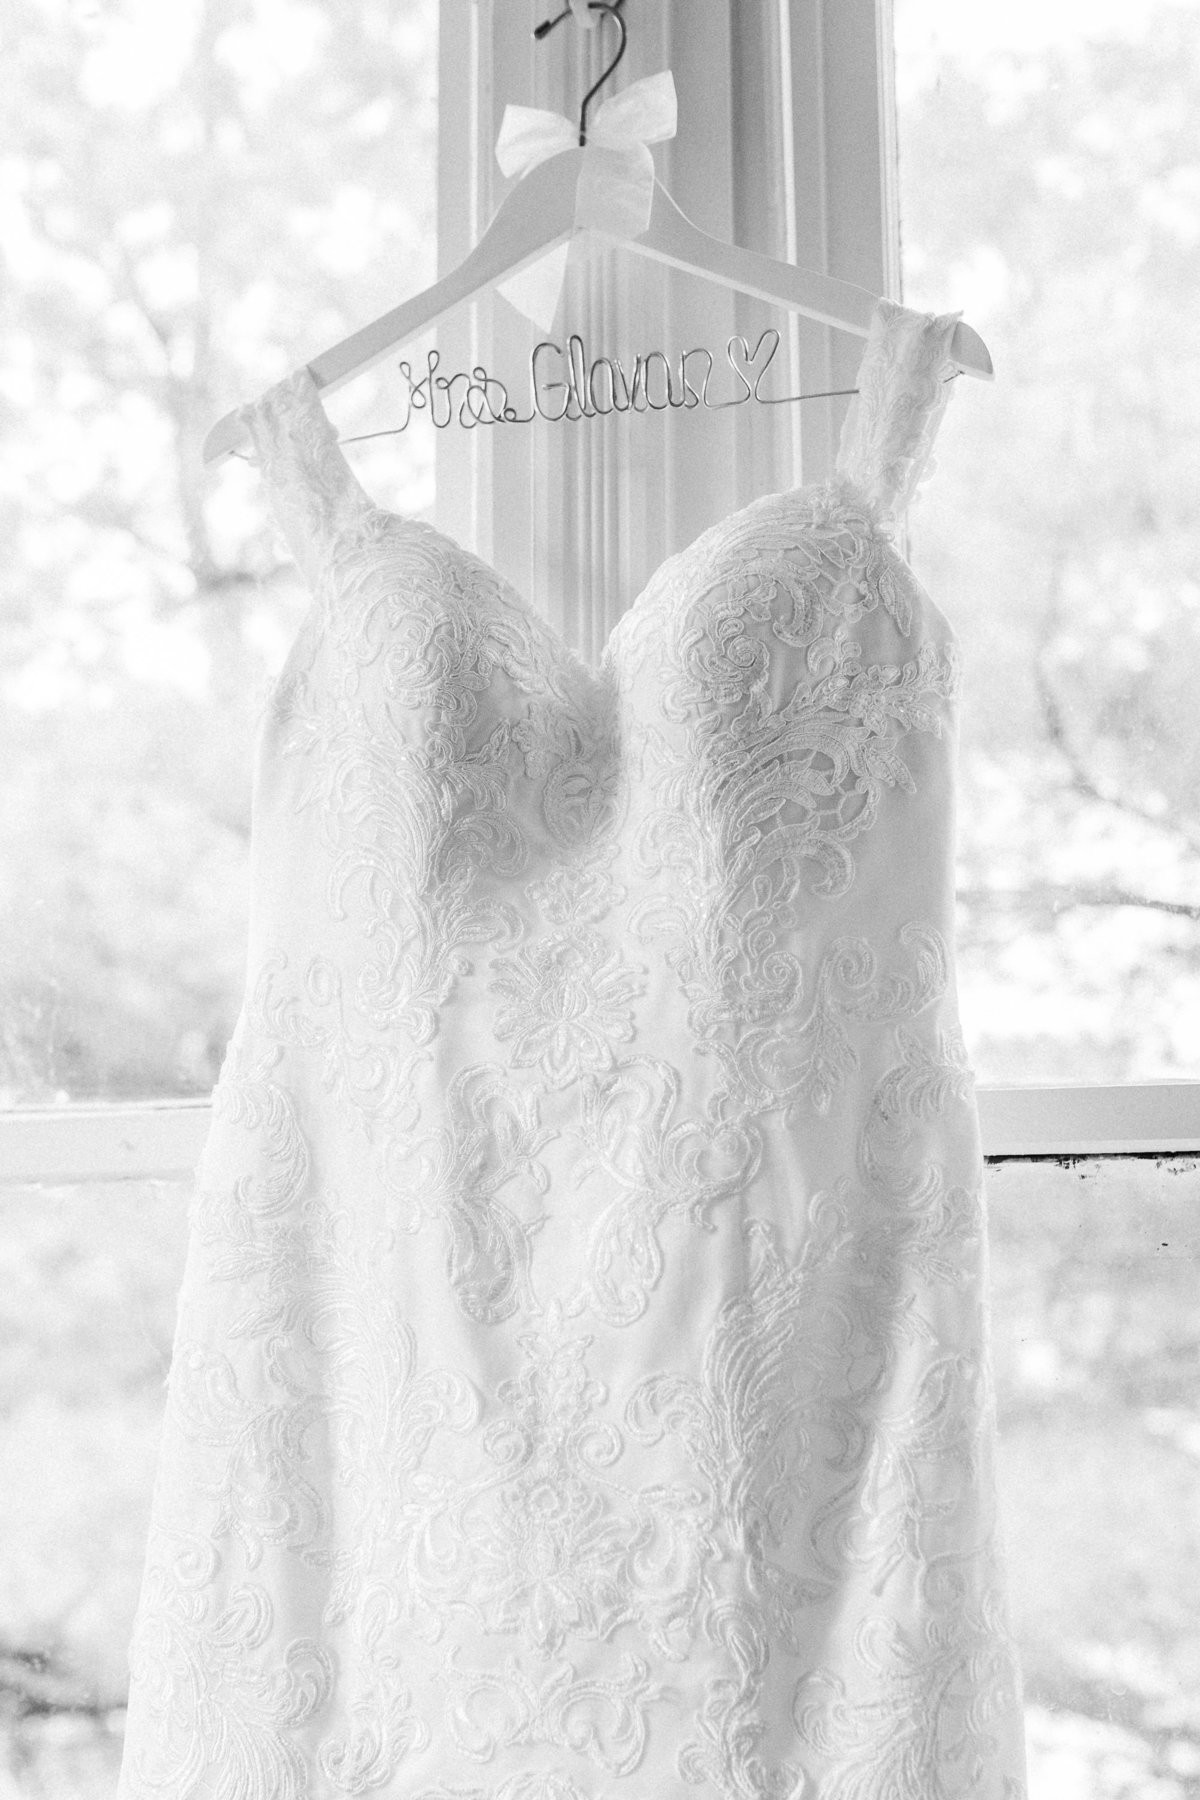 Black and white photo of a wedding dress hanging in a window